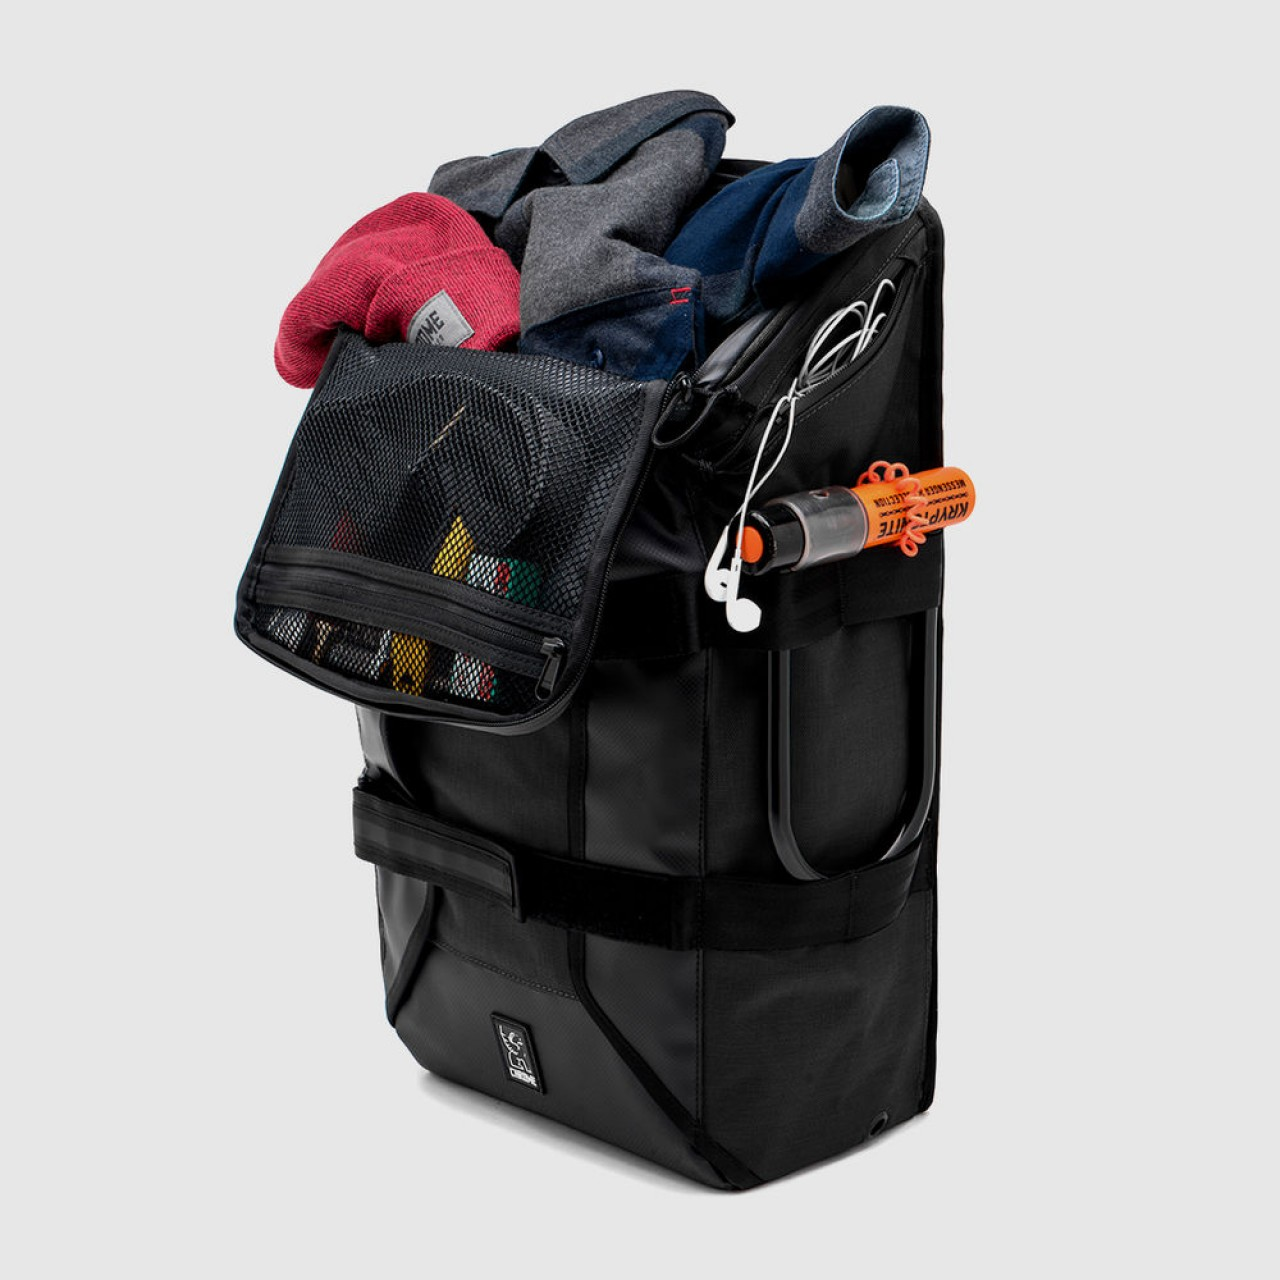 Chrome Brigade Backpack 179 90